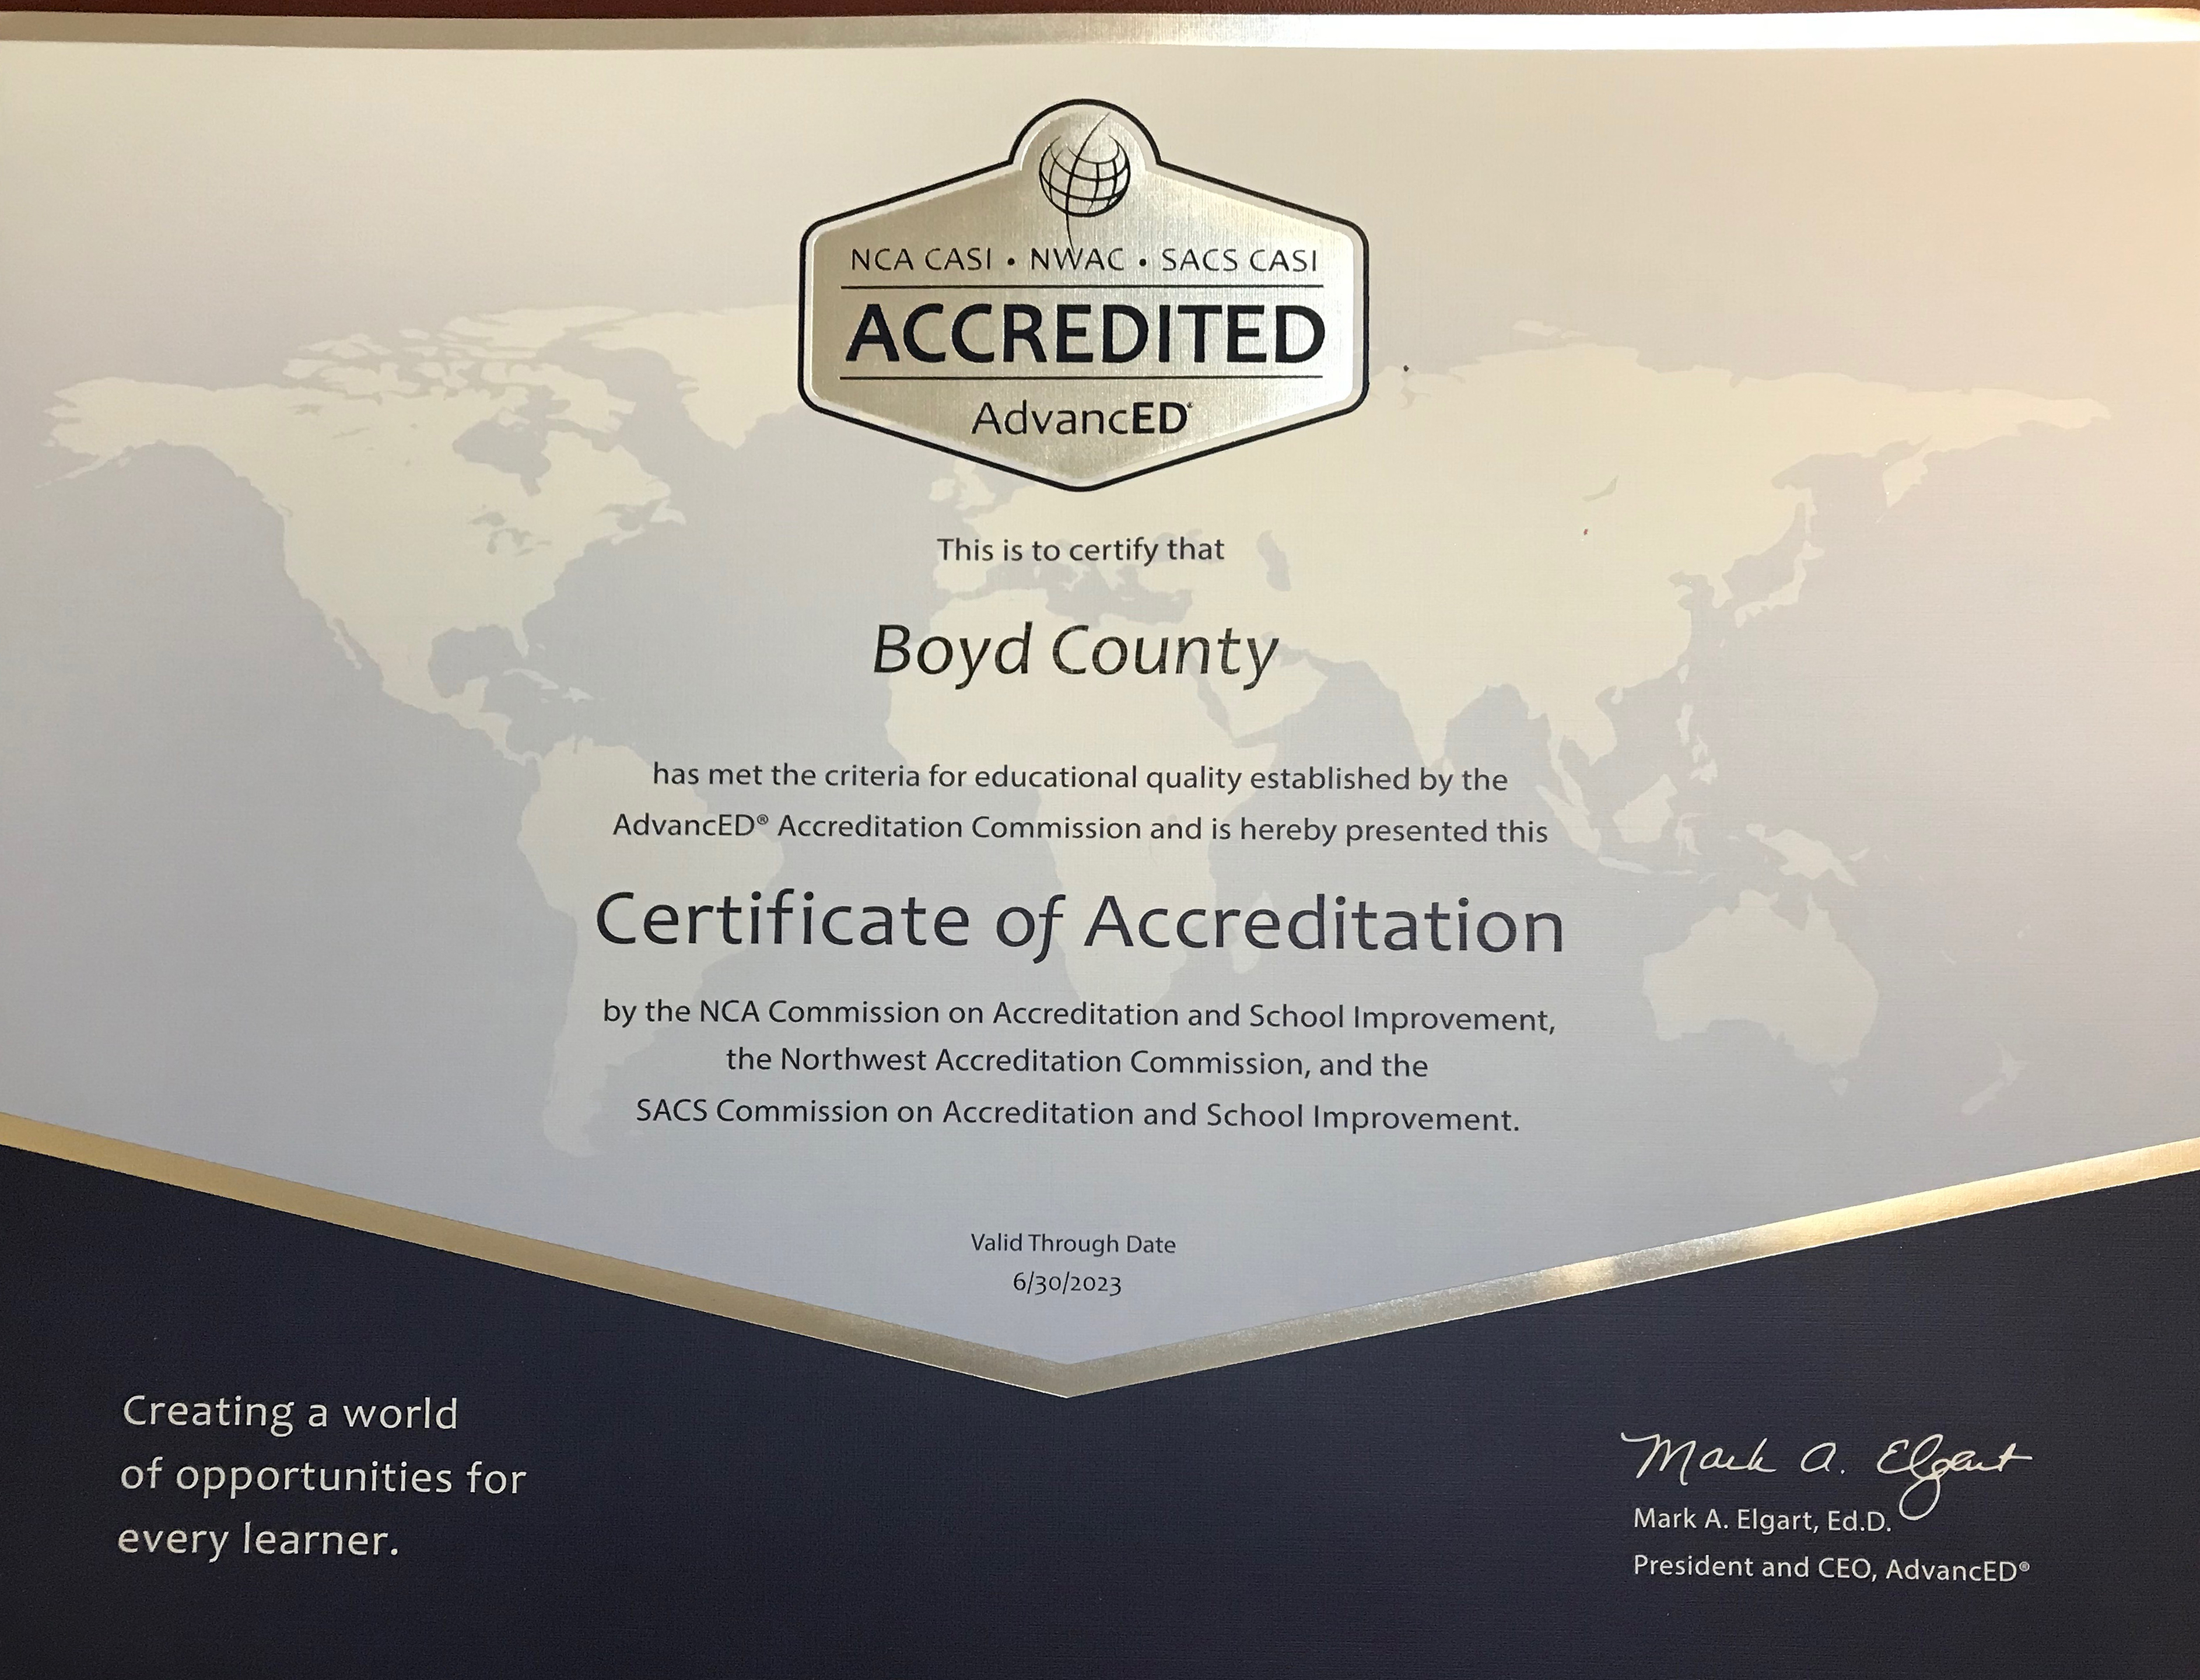 Image of the SACS-CASI AdvancED accreditation certificate.